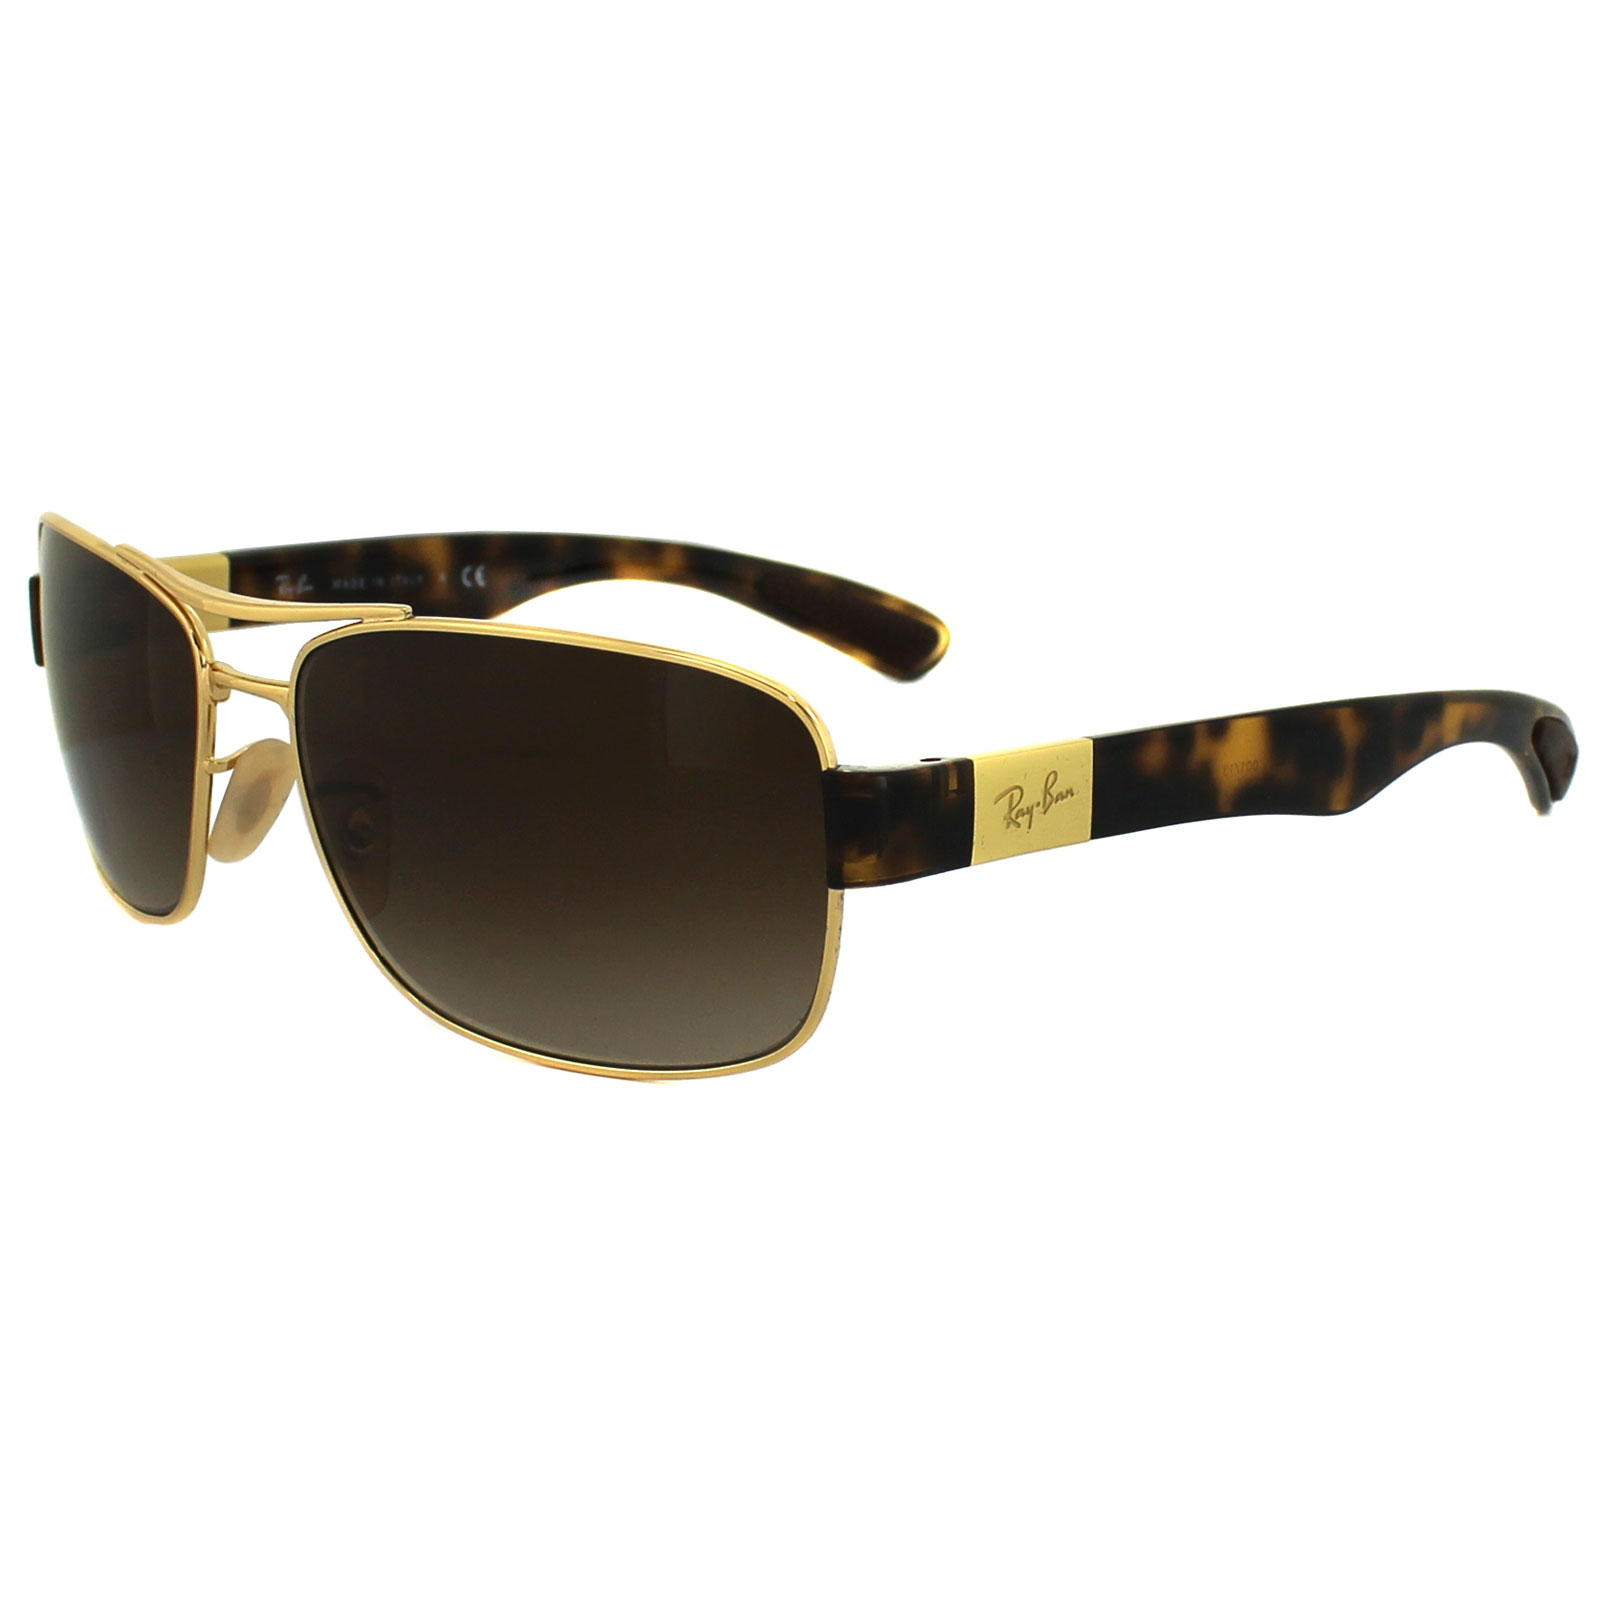 70c8cdf0b9e9c ... get sentinel ray ban sunglasses 3522 001 13 gold brown gradient 09a02  b3b04